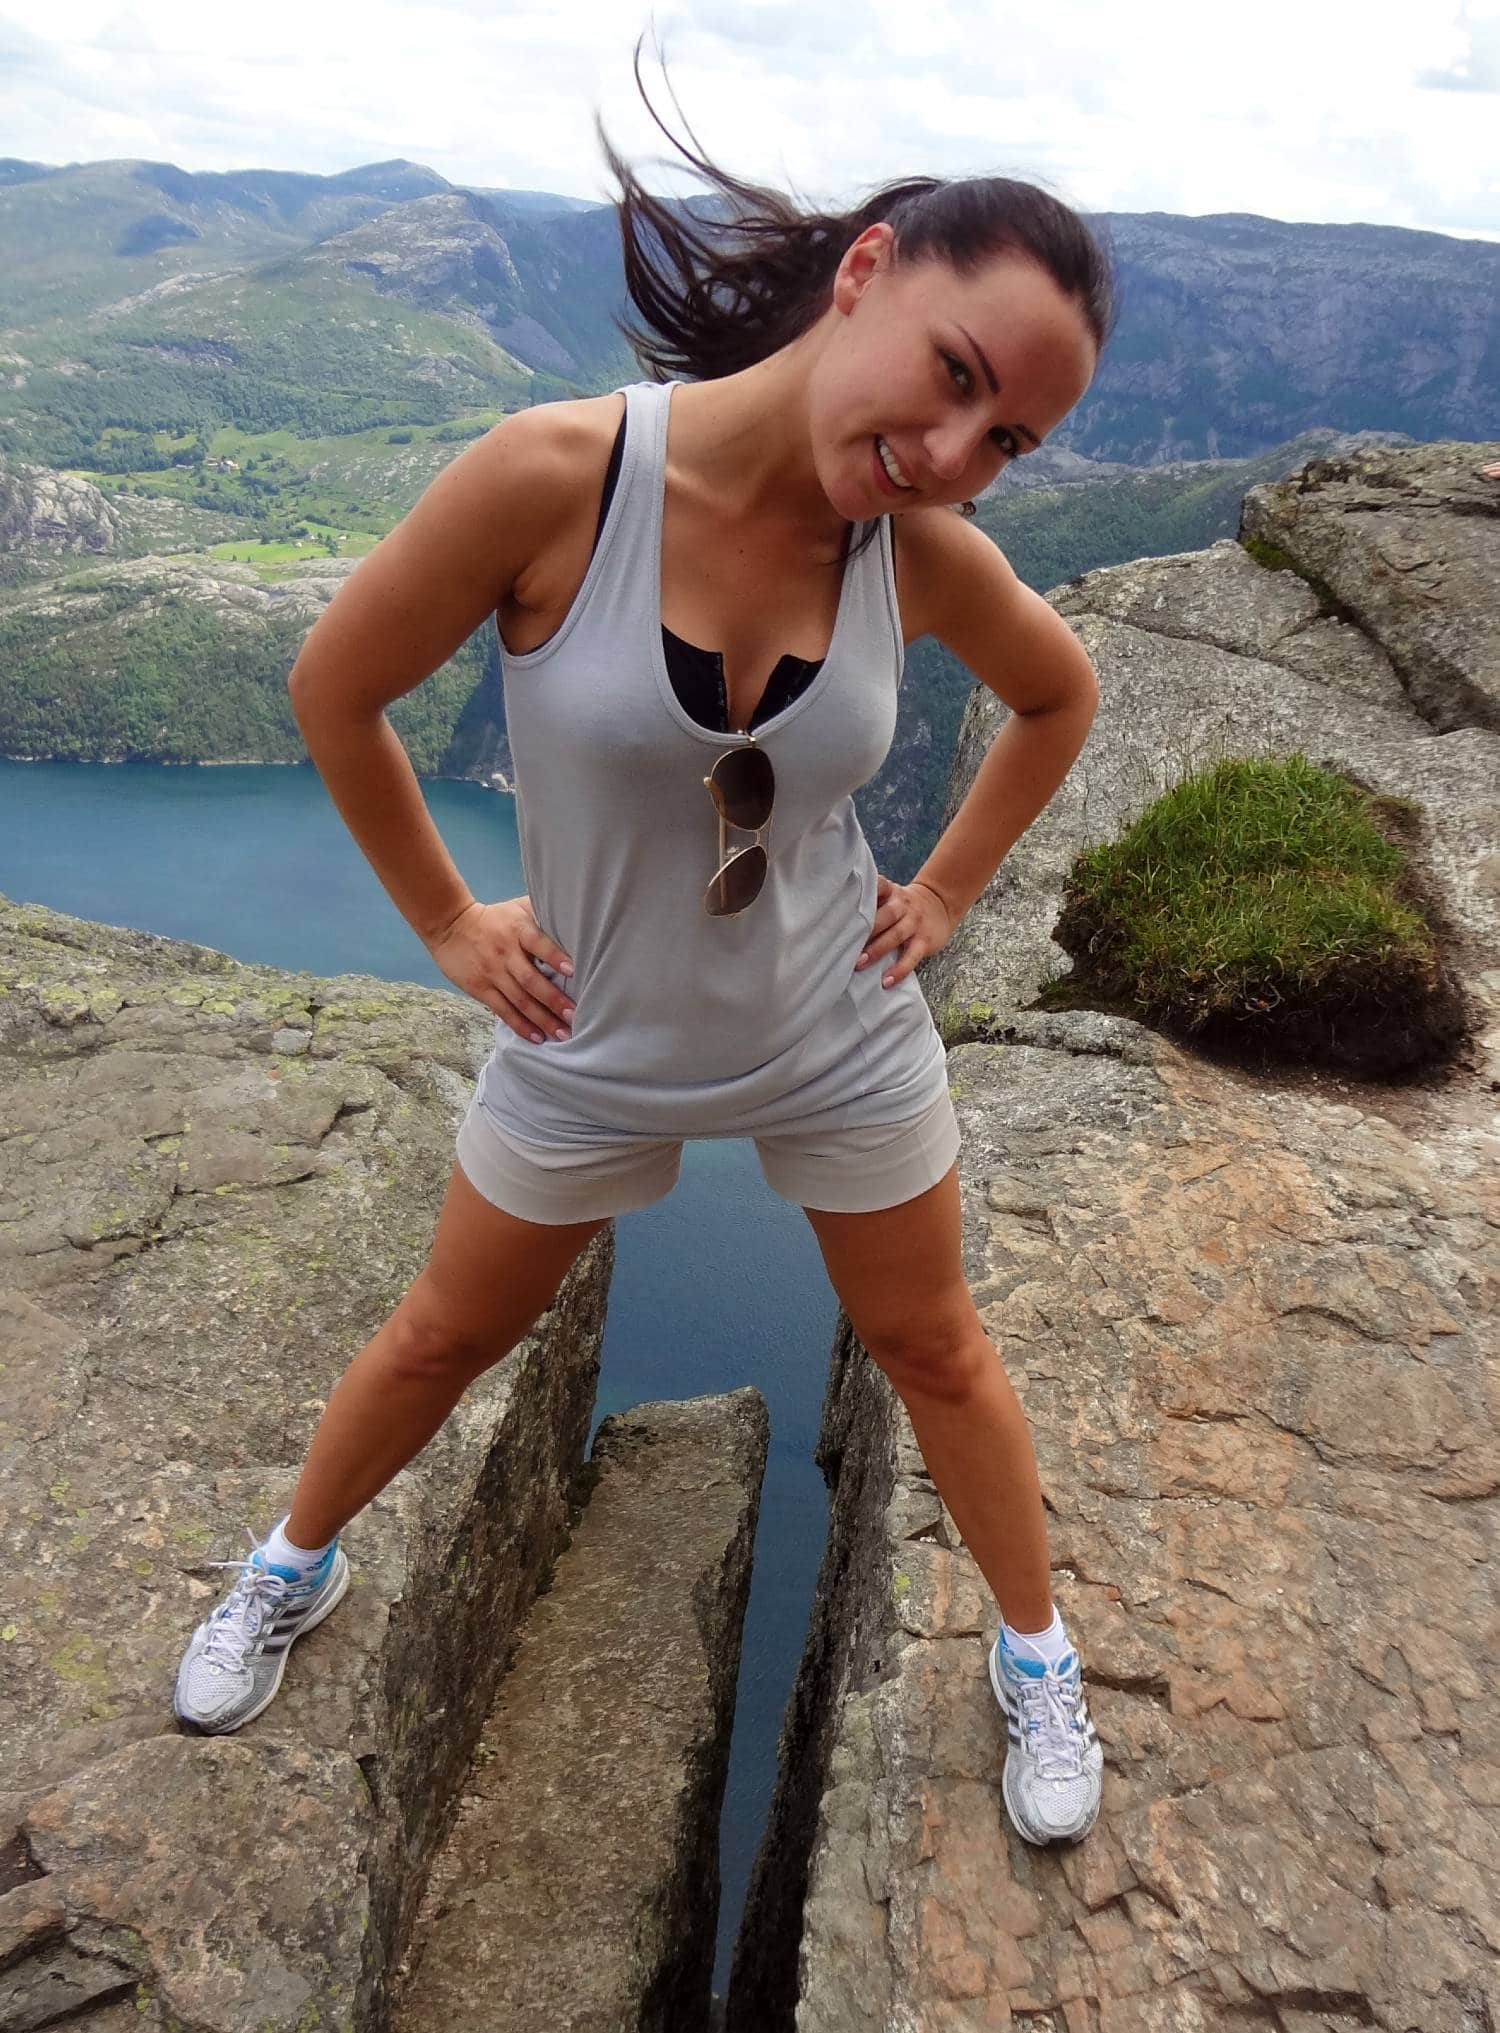 Julija from Leisure Hiking standing between two mountain formations and a 800 meter drop down to the fjord.